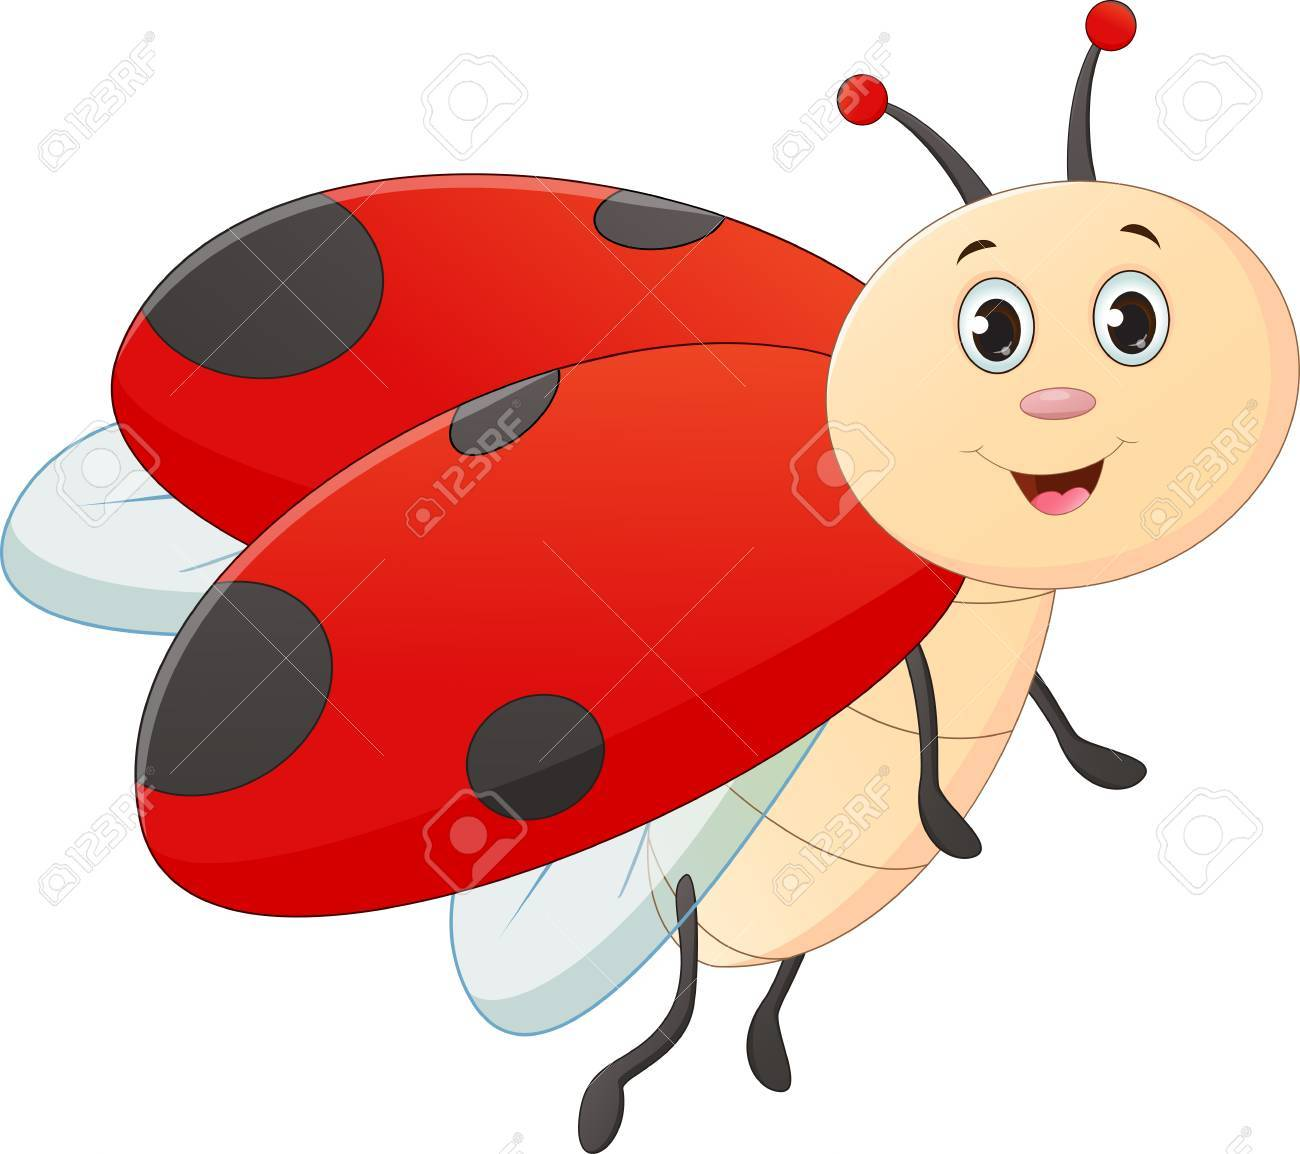 Free Ladybird Cliparts, Download Free Clip Art, Free Clip Art on Clipart  Library